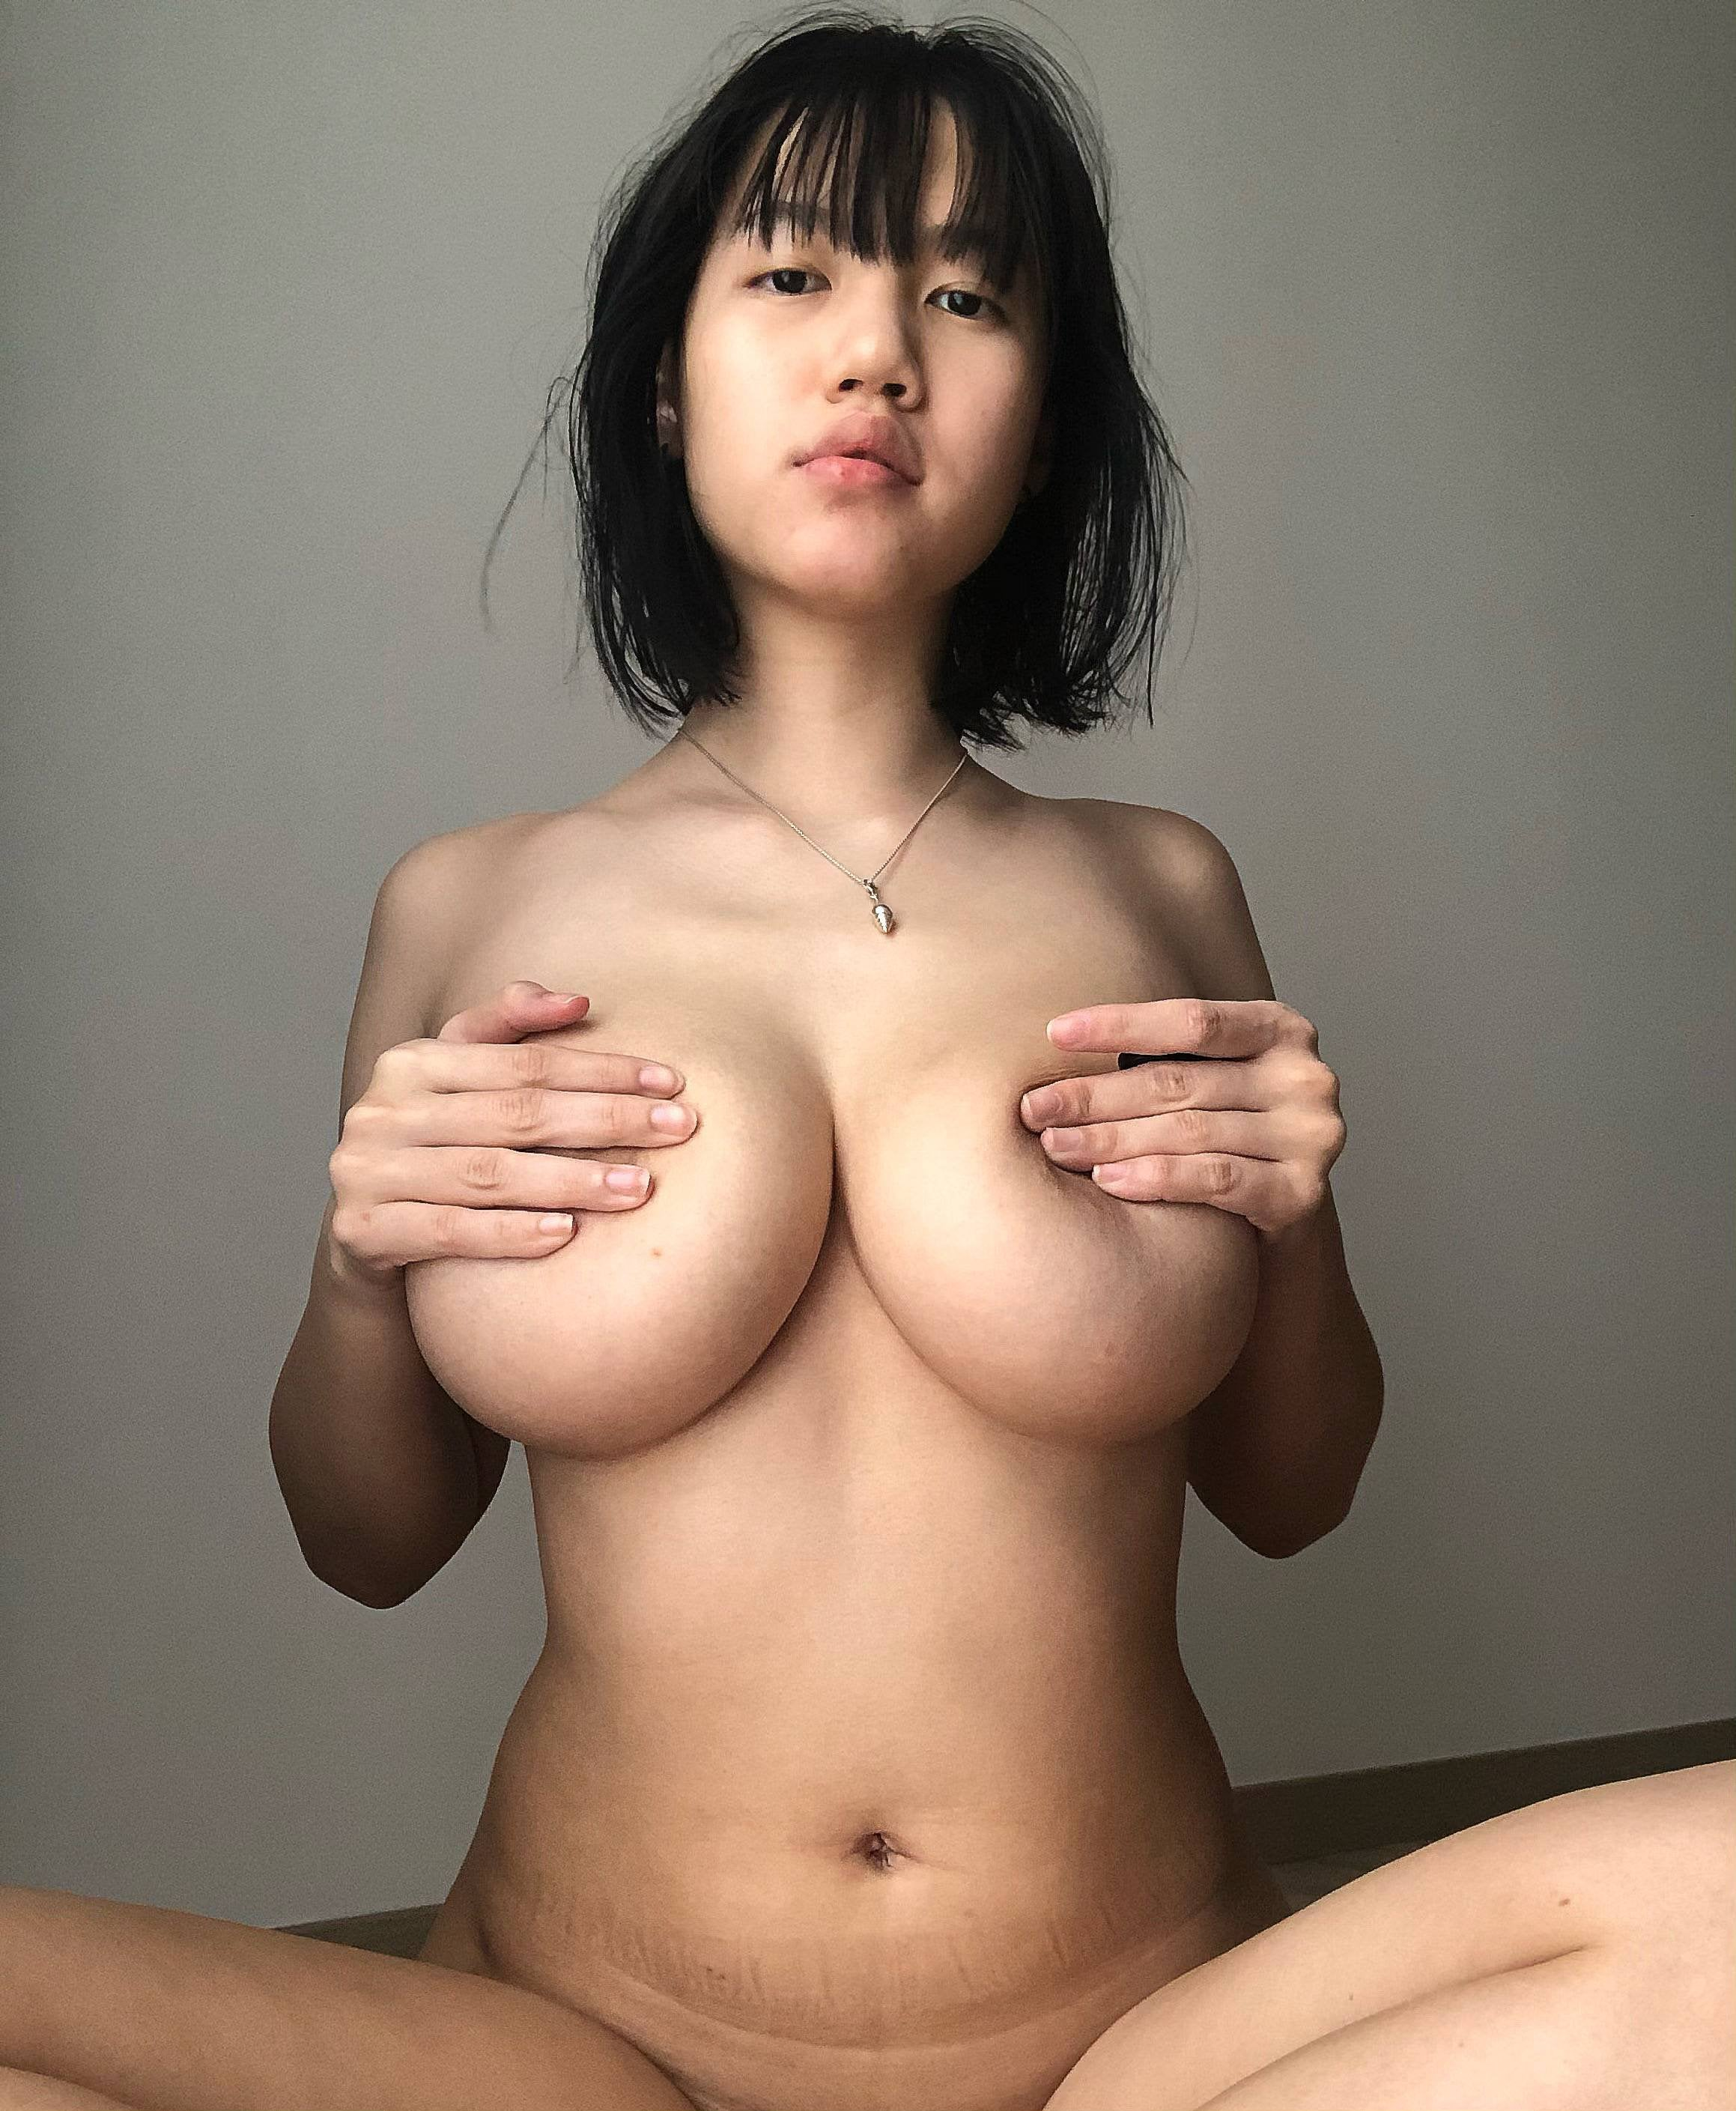 One of our naked asian pics called Ample.